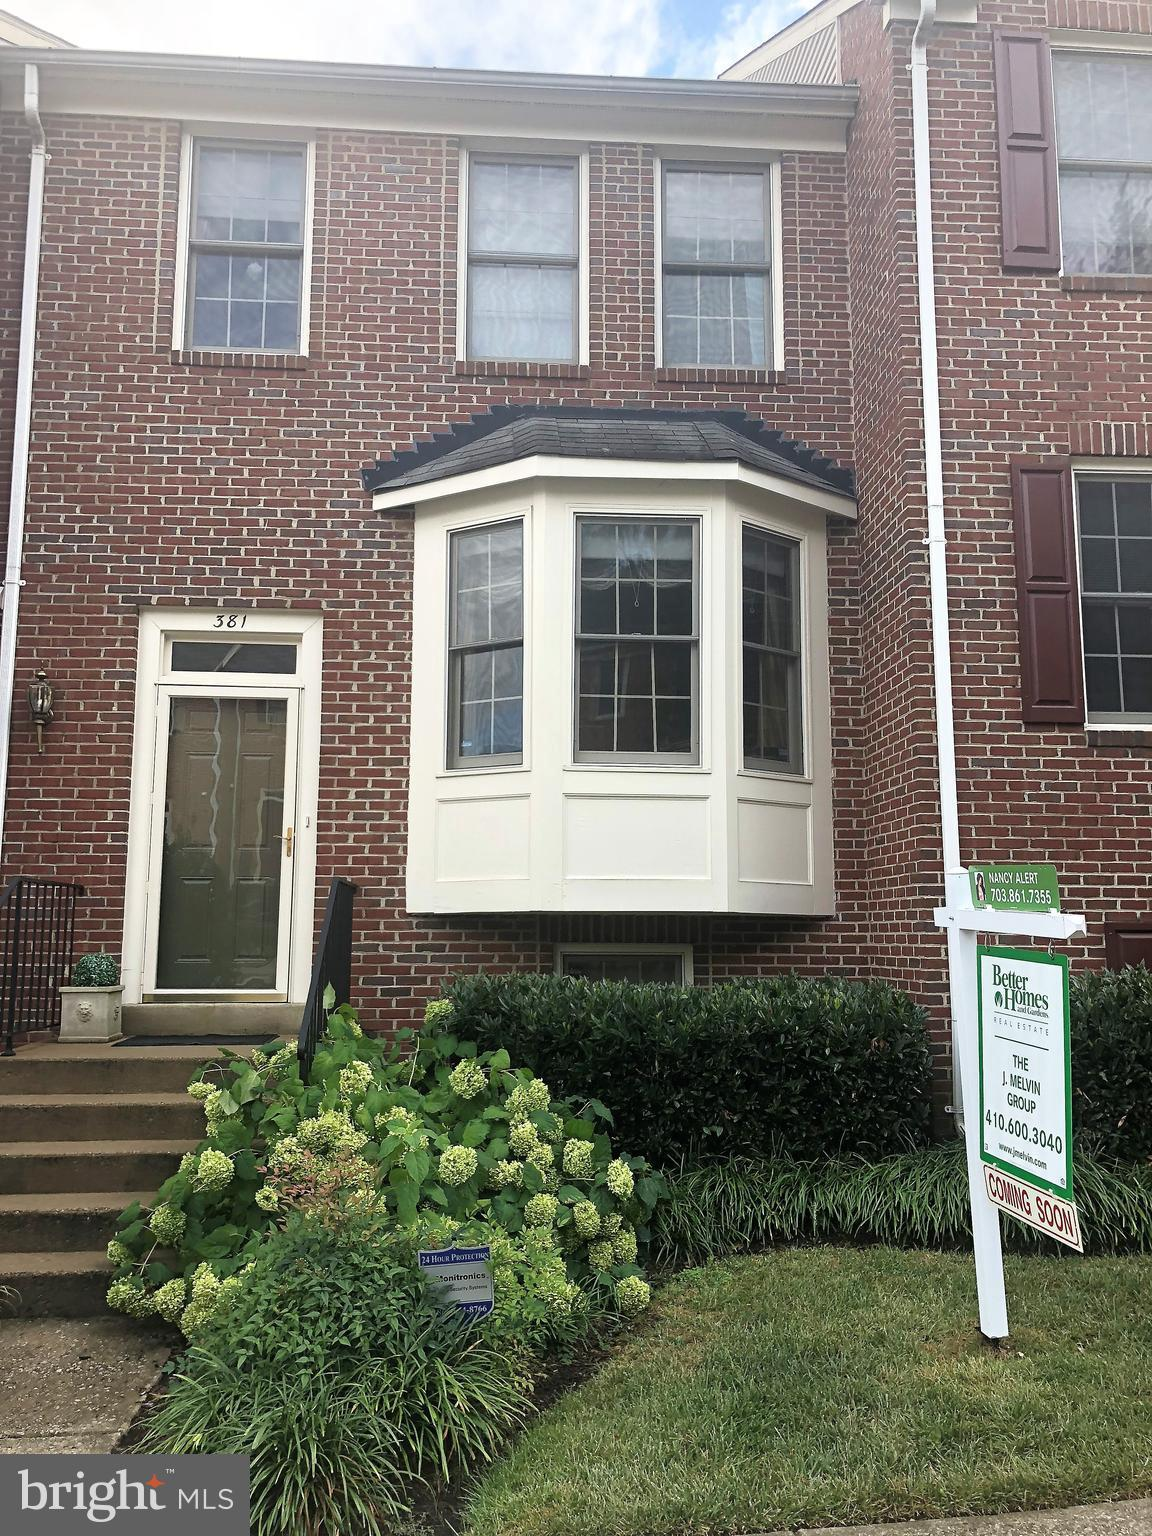 Spacious 3 level townhouse conveniently located close to everything, 1 mile to Blue Line, I-95/495/395, 21B Metro Bus to the Pentagon. Minutes to Shirlington, OldTowne, Kingstowne & DC. This brick townhouse has 4BR, 3.5BA, gas fireplace, large deck and patio, breakfast room, separate DR, spacious LR, Gourmet Kitchen with tile floors, wood floor through out the main level, basement stairs and hall.